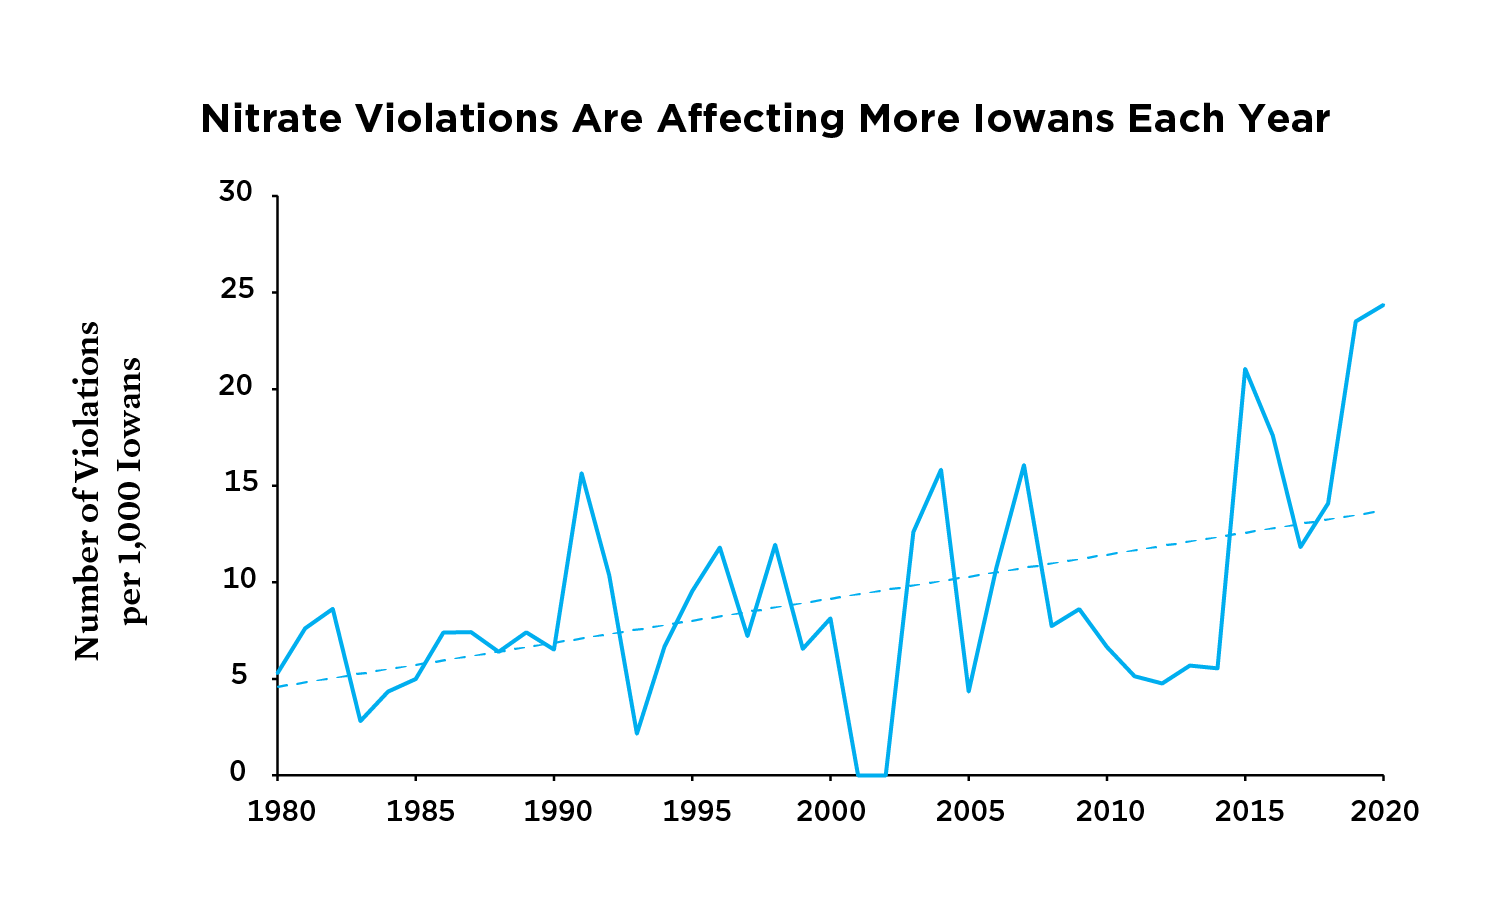 Graph showing increasing number of nitrate violations per capita in Iowa